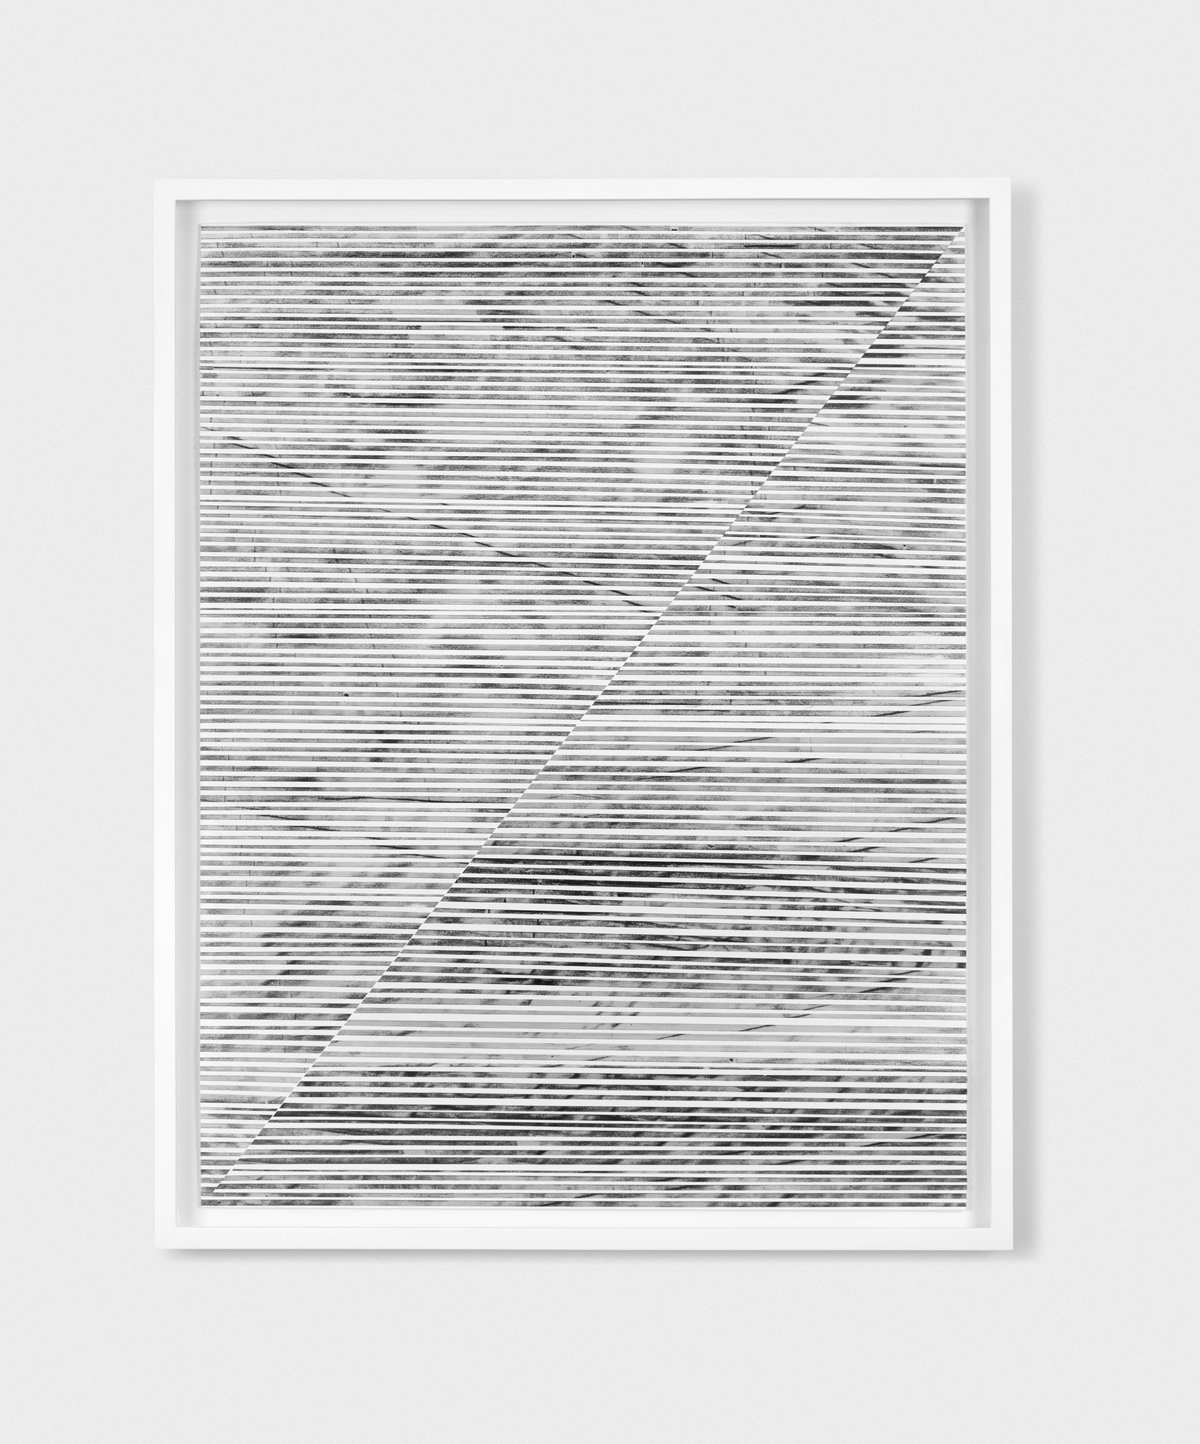 Untitled (the line between #1)  2014, charcoal and powdered graphite on translucent tape, cut and arranged on cotton paper, 22 x 28 inches